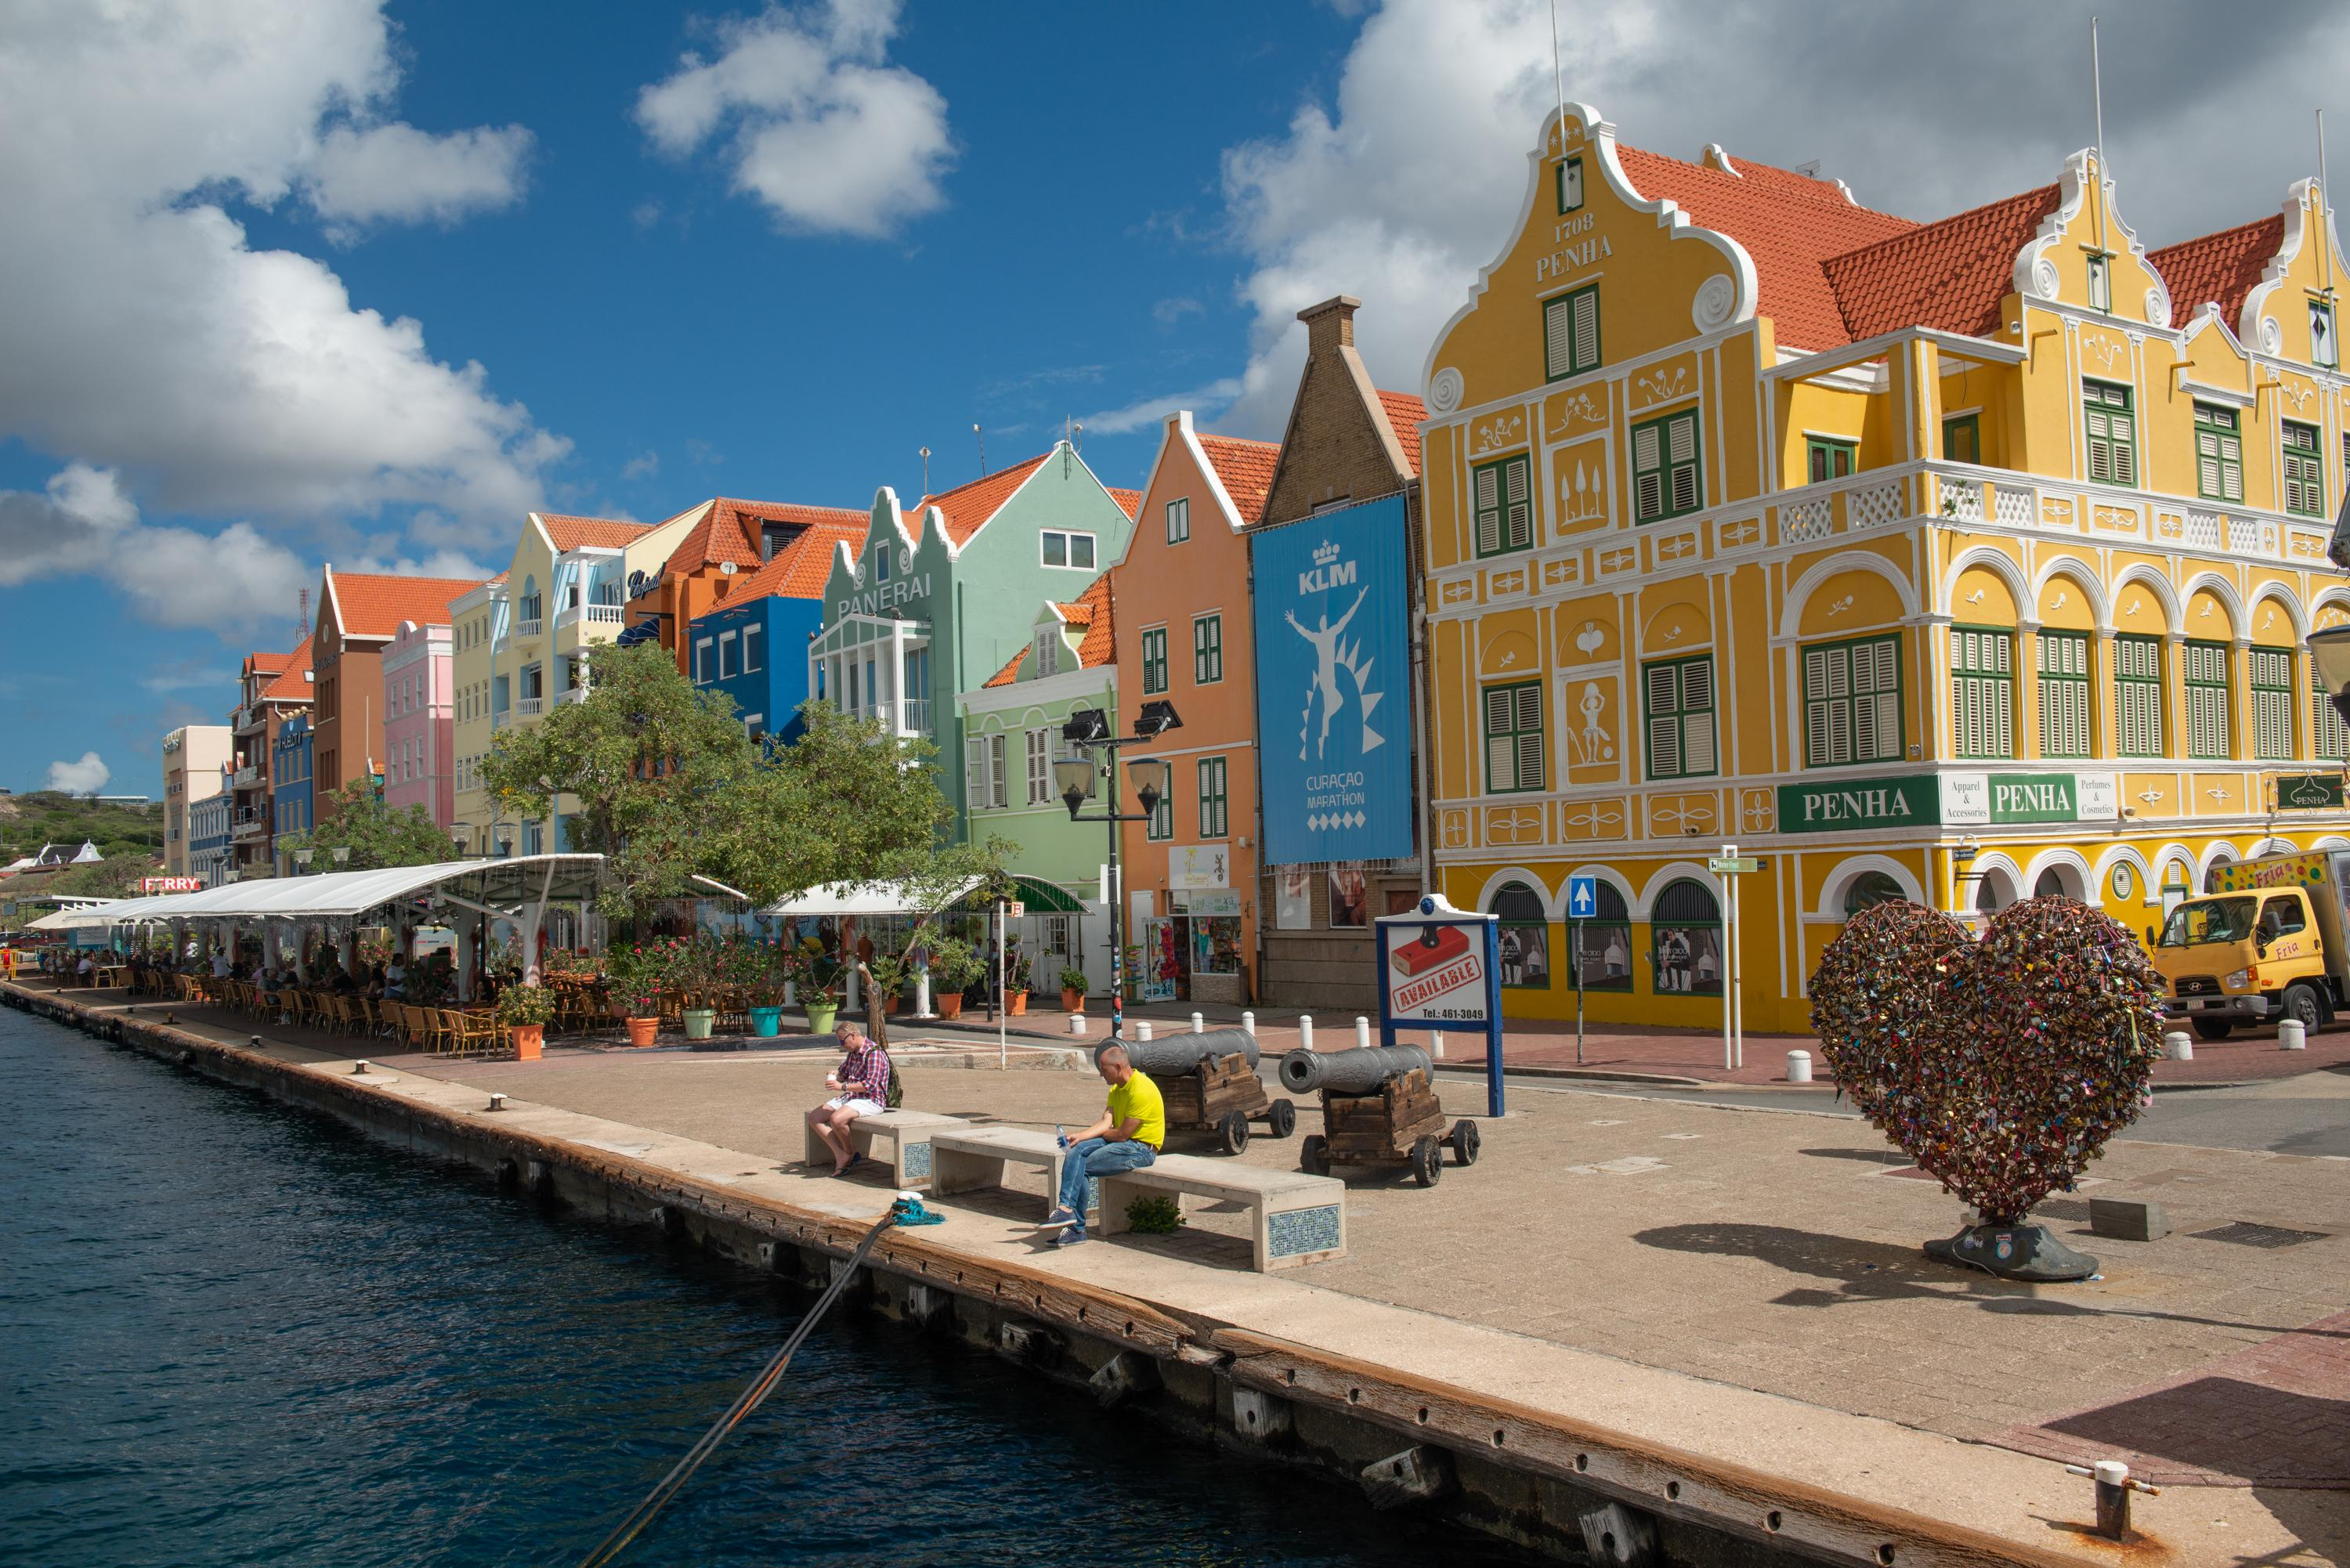 Downtown Willamstad in Curacao